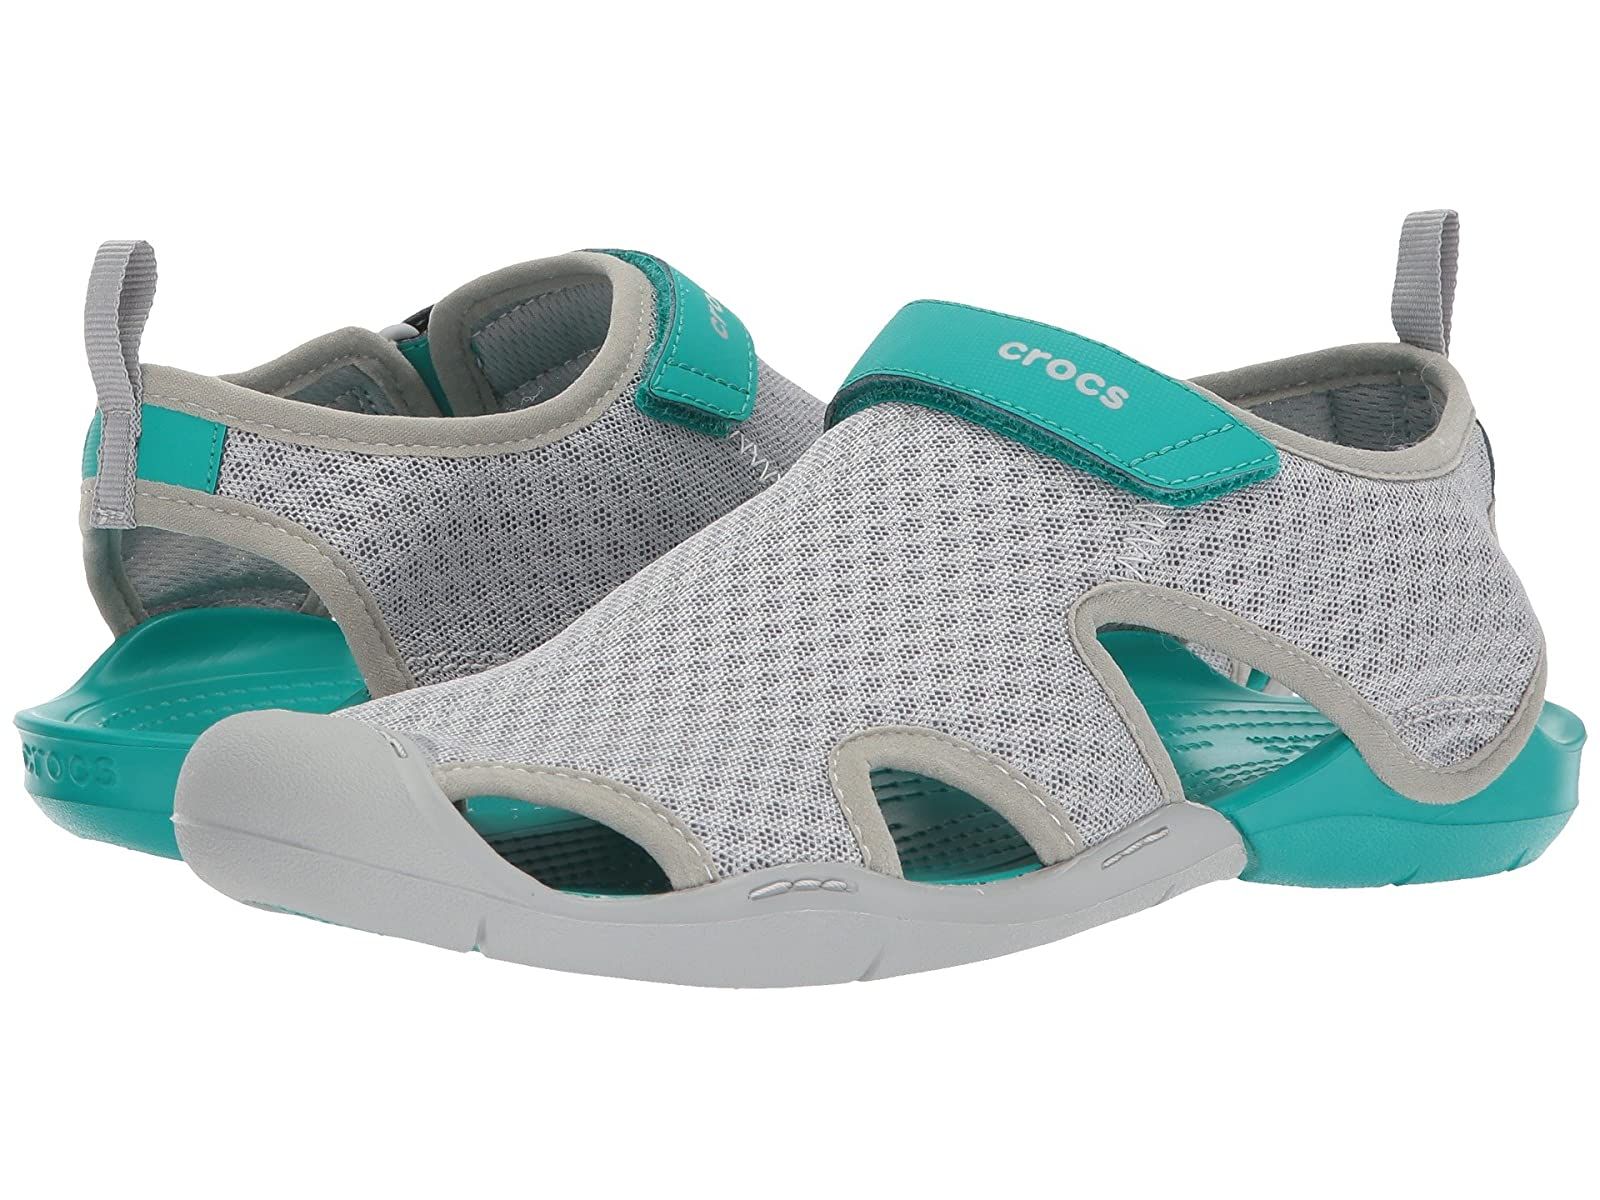 Crocs Swiftwater Mesh SandalComfortable and distinctive shoes